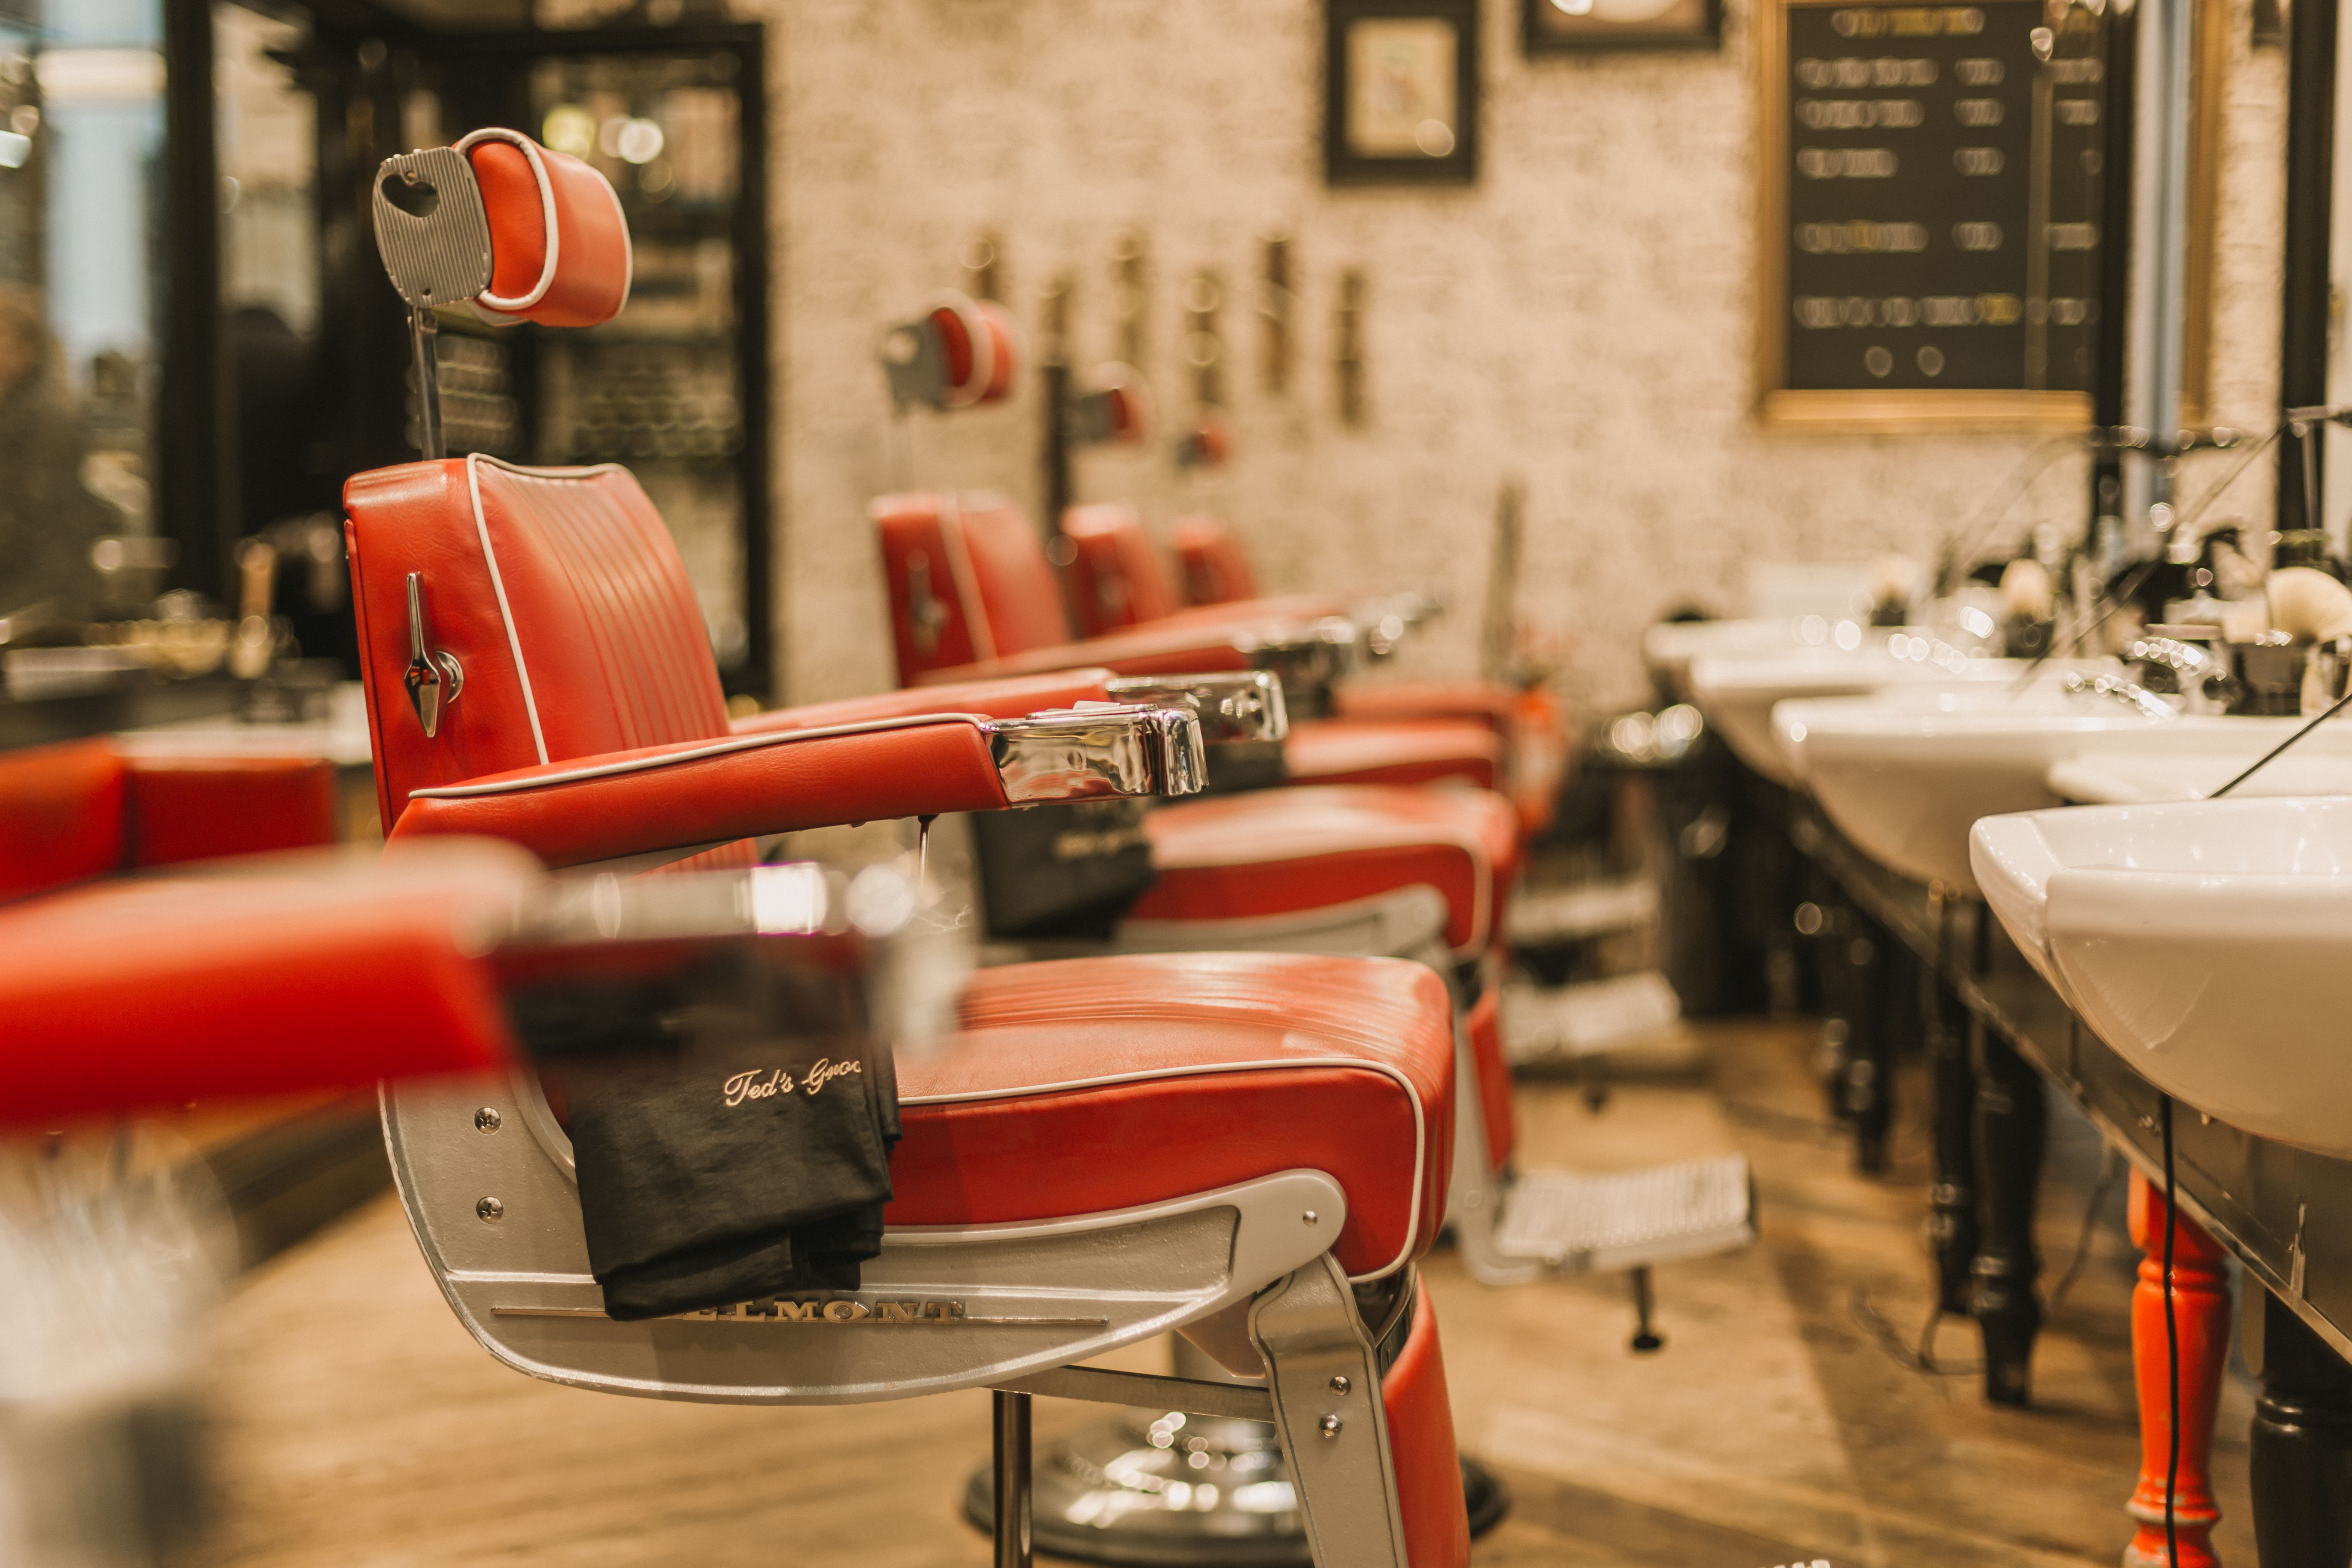 Take A Seat And Ted S Barbers Will Take Care Of The Rest Room